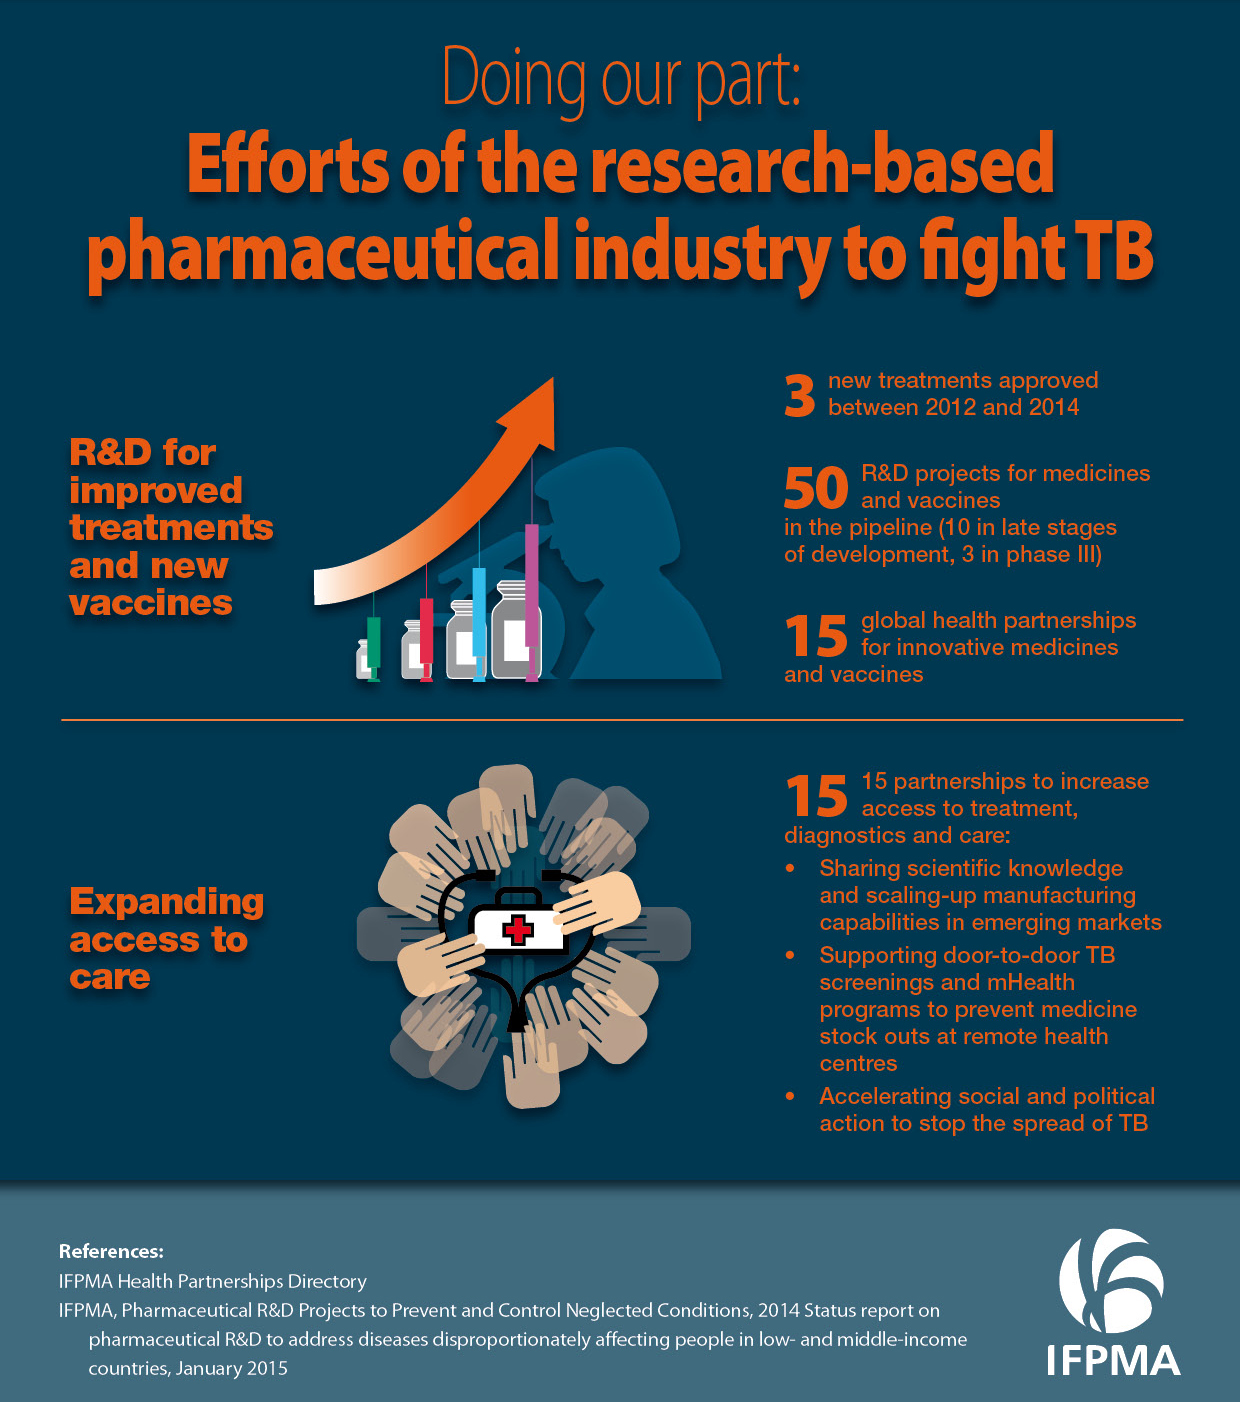 IFPMA-WORLD_TB_DAY_2015-3of3-Doing_our_part